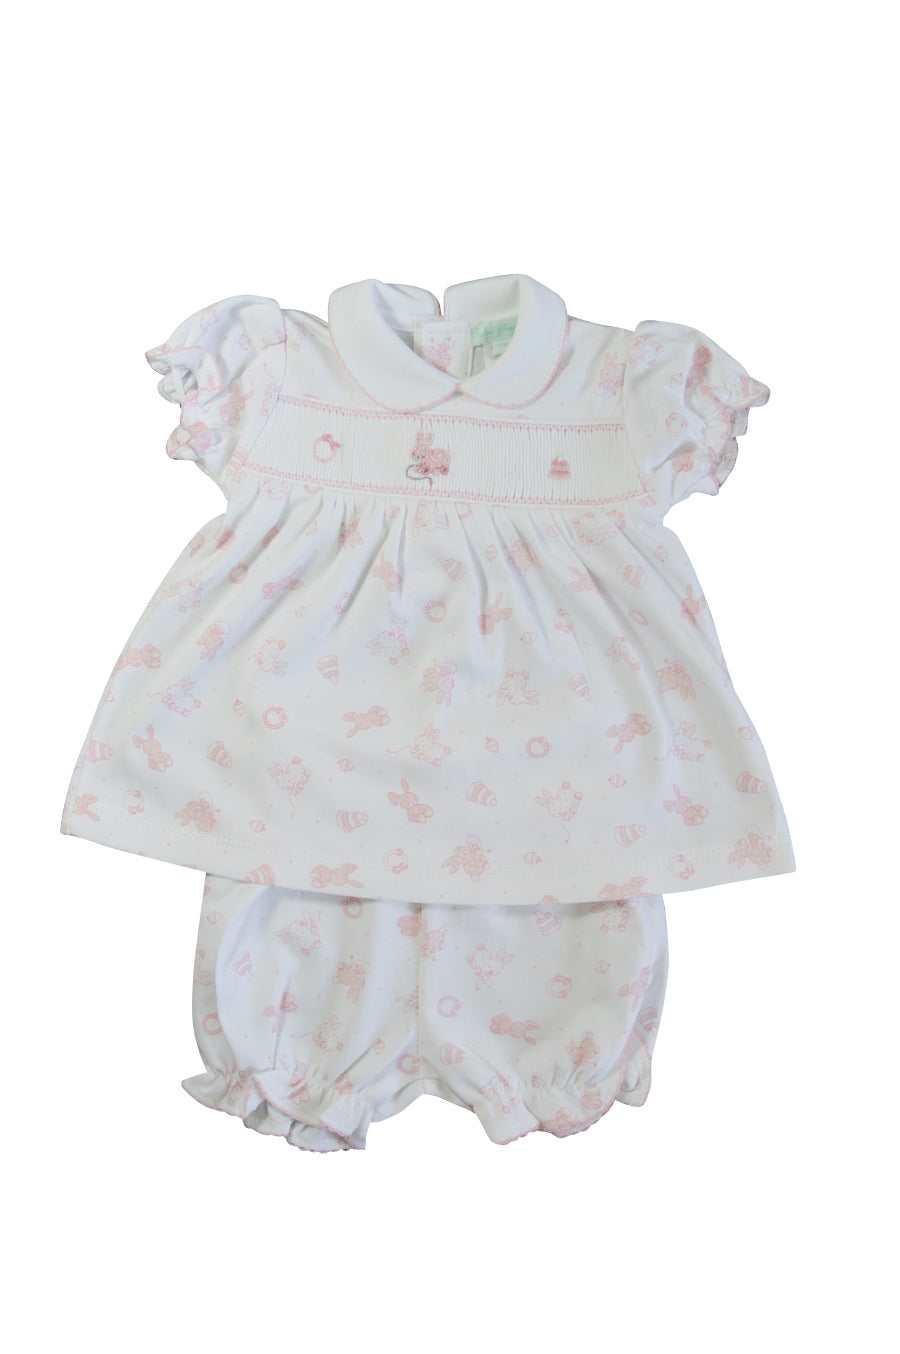 Baby Girl's Toy Bunnies Dress - Little Threads Inc. Children's Clothing